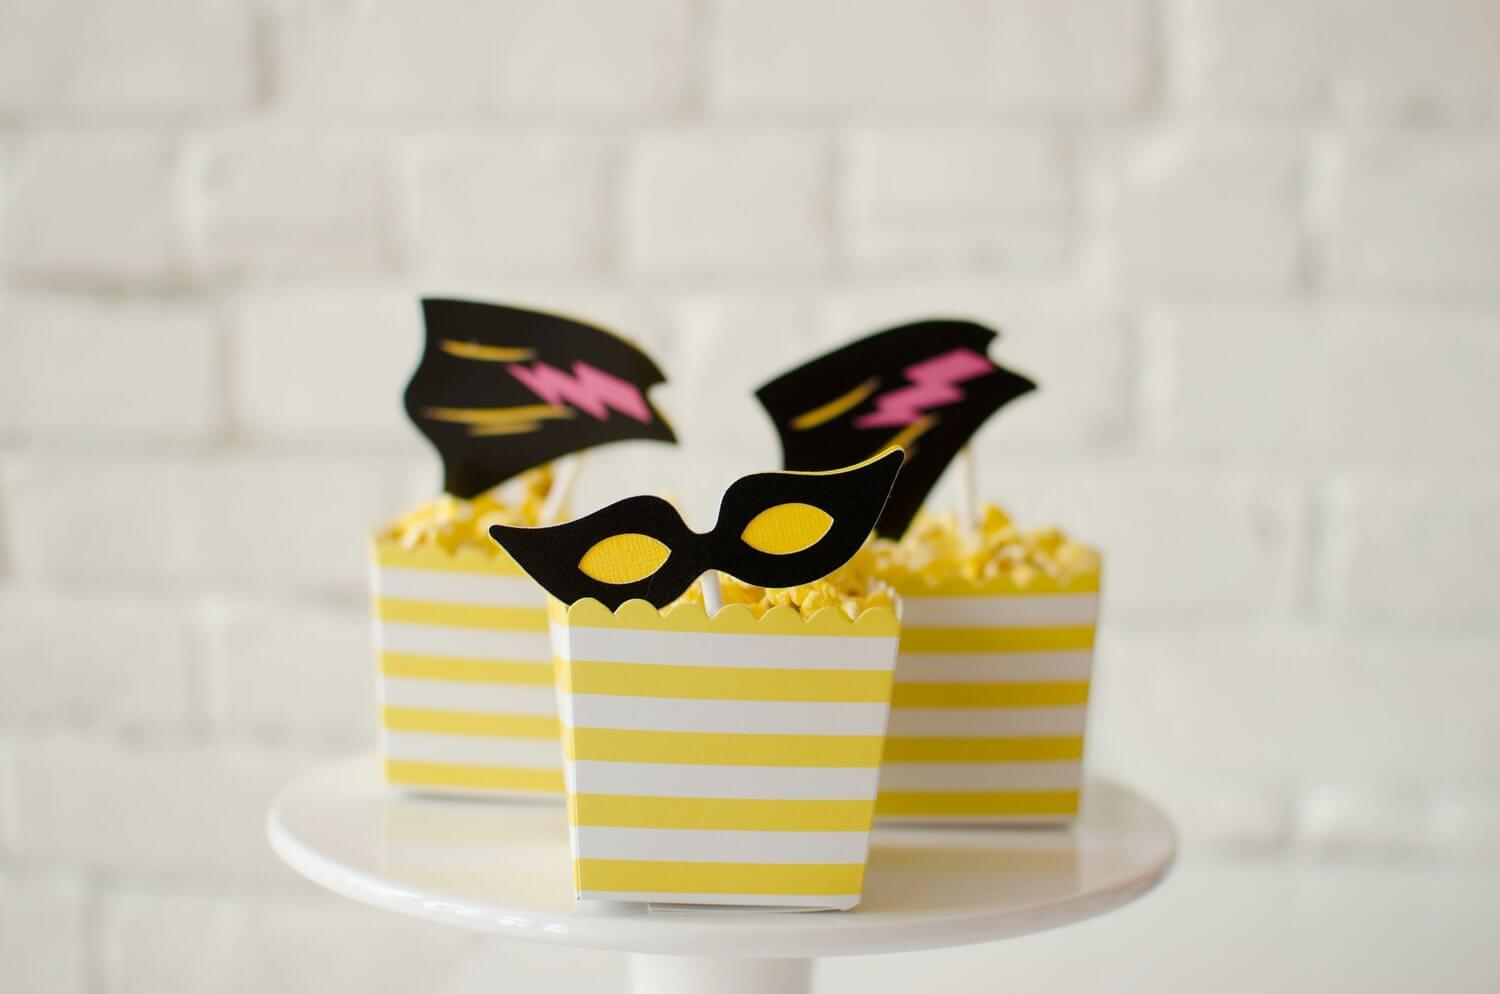 Don't forget that cupcake toppers can also be used on snacks - here the toppers dress up boxes of popcorn - see more kids party ideas on Mint Event Design www.minteventdesign.com